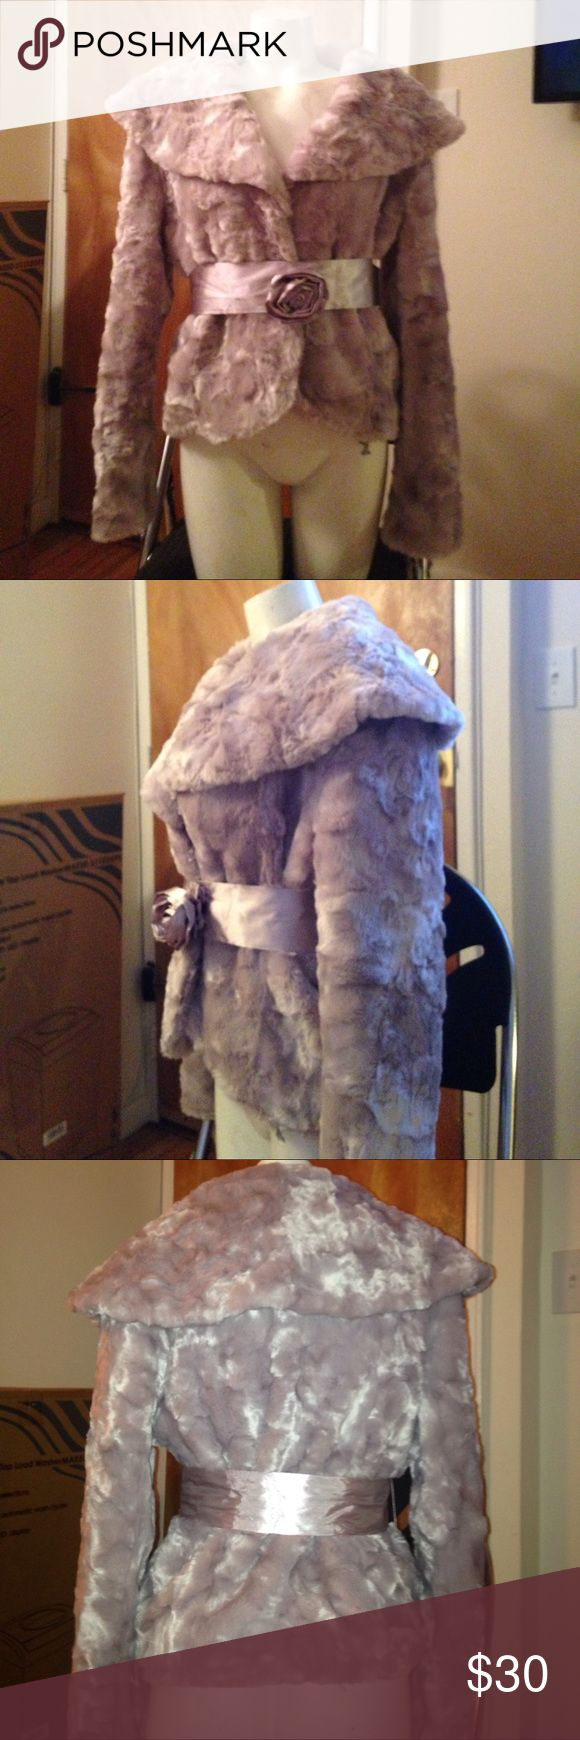 Faux Fur Jacket Faux Fur bolero jacket with ribbon belt around waist. Flower on front of ribbon closure. Big collar. Missing 1 hook closure. Can easily be replaced. Satin lining on inside. Very Cute with jeans. Kenneth Cole Reaction Jackets & Coats